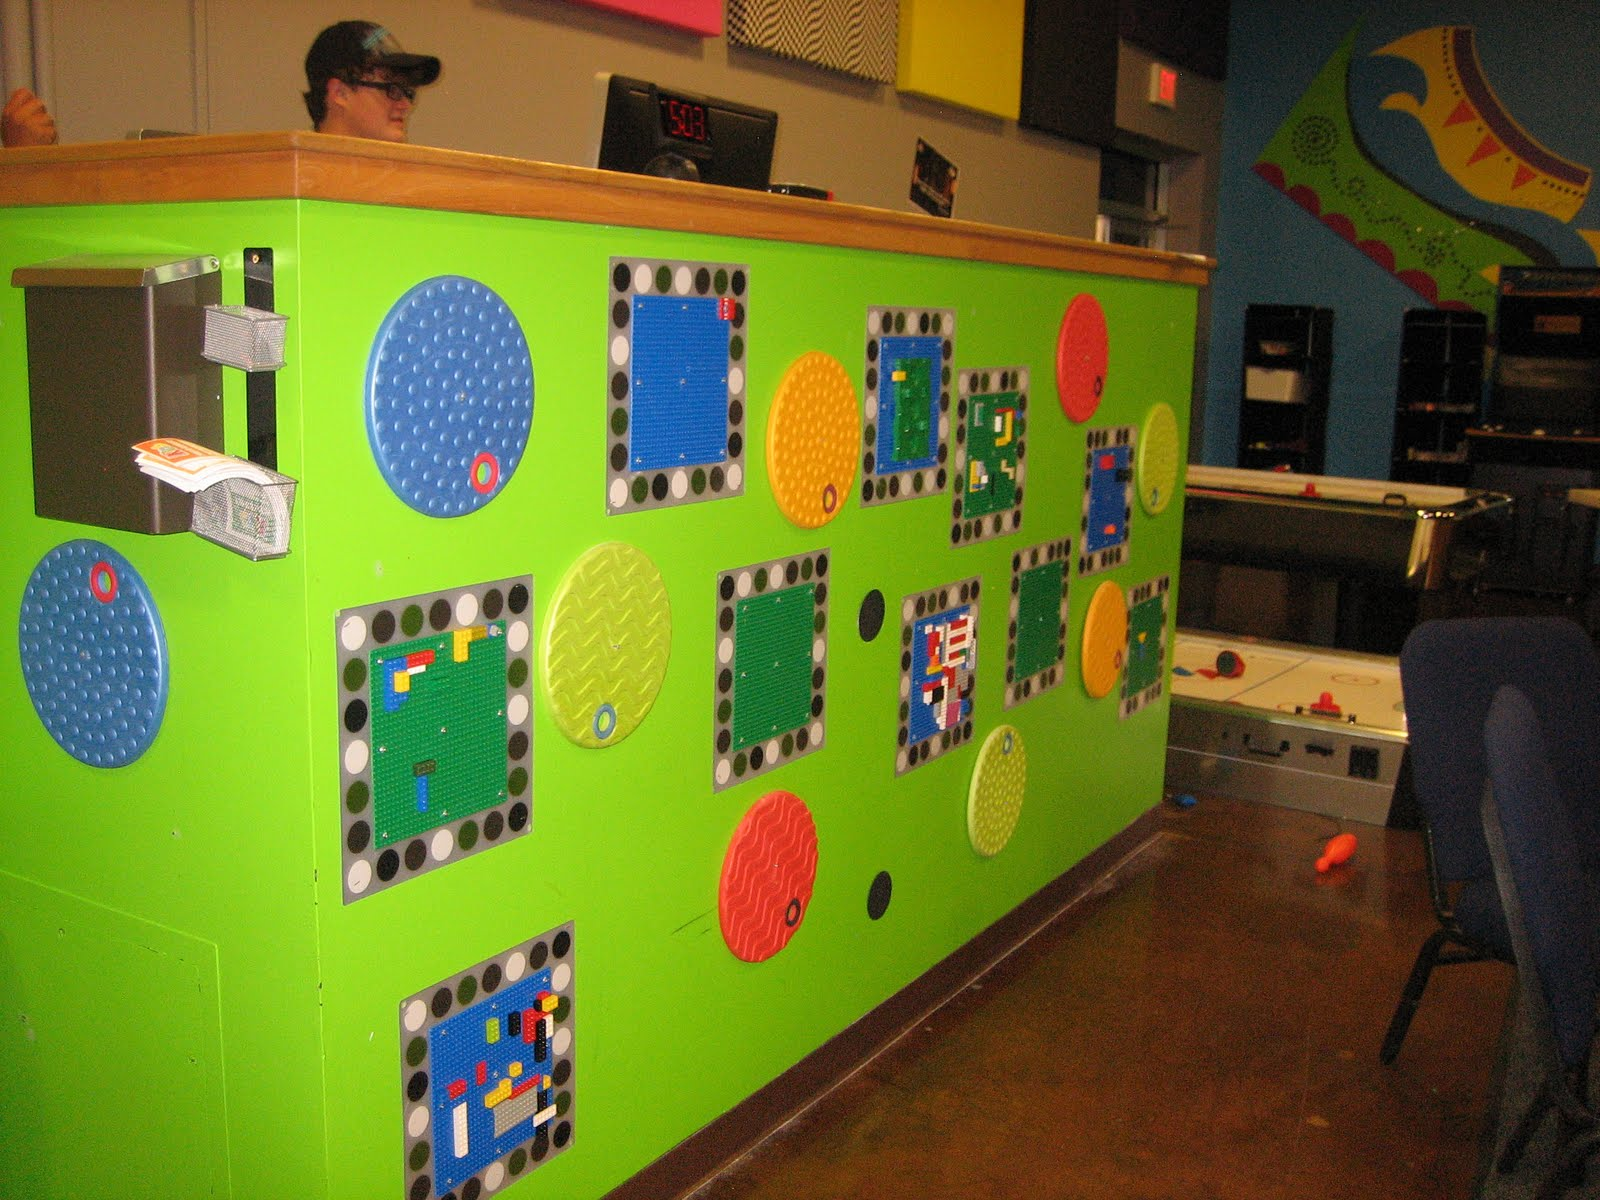 Lego Wall Decor lego decorating ideas images - reverse search